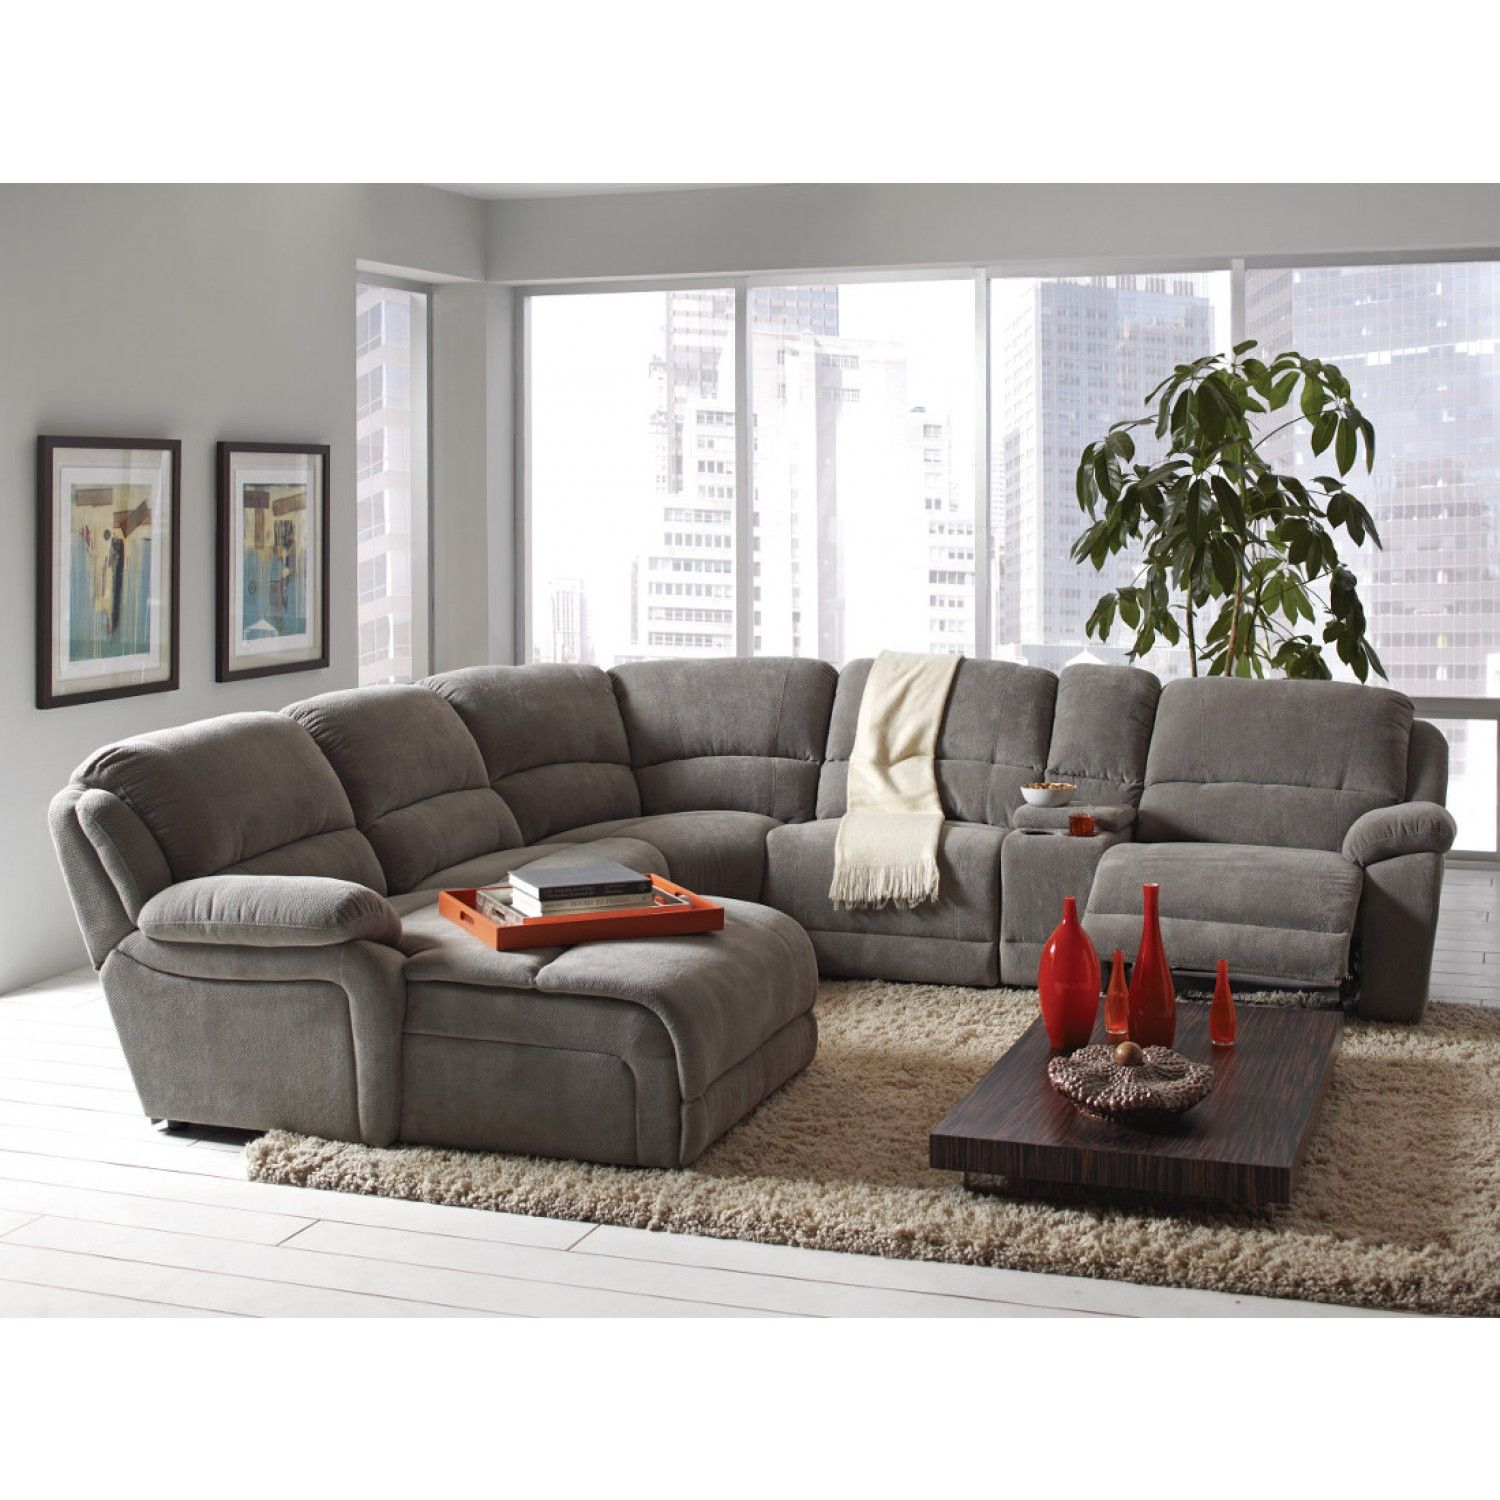 Coaster Mackenzie Silver 6 Piece Reclining Sectional Sofa With